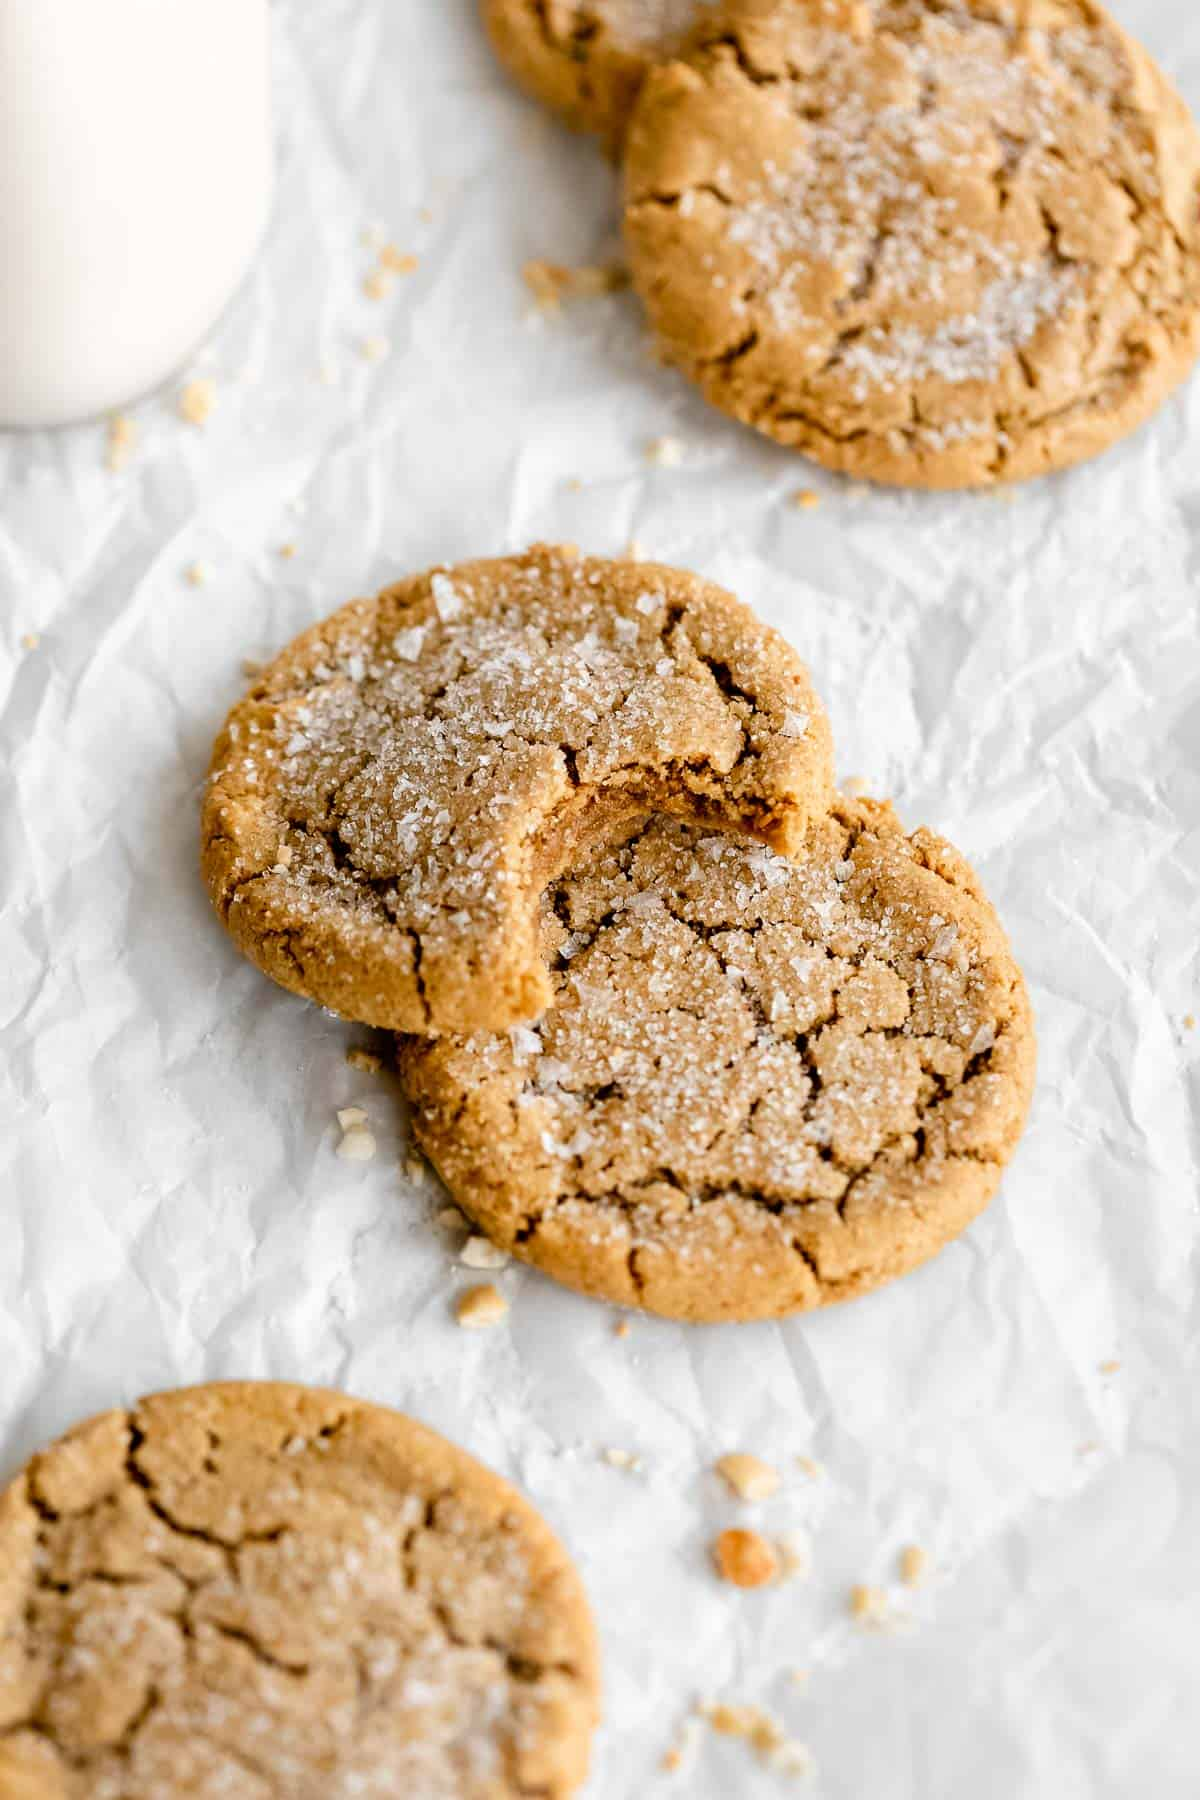 gluten free Peanut butter cookies with sea salt flakes on top.